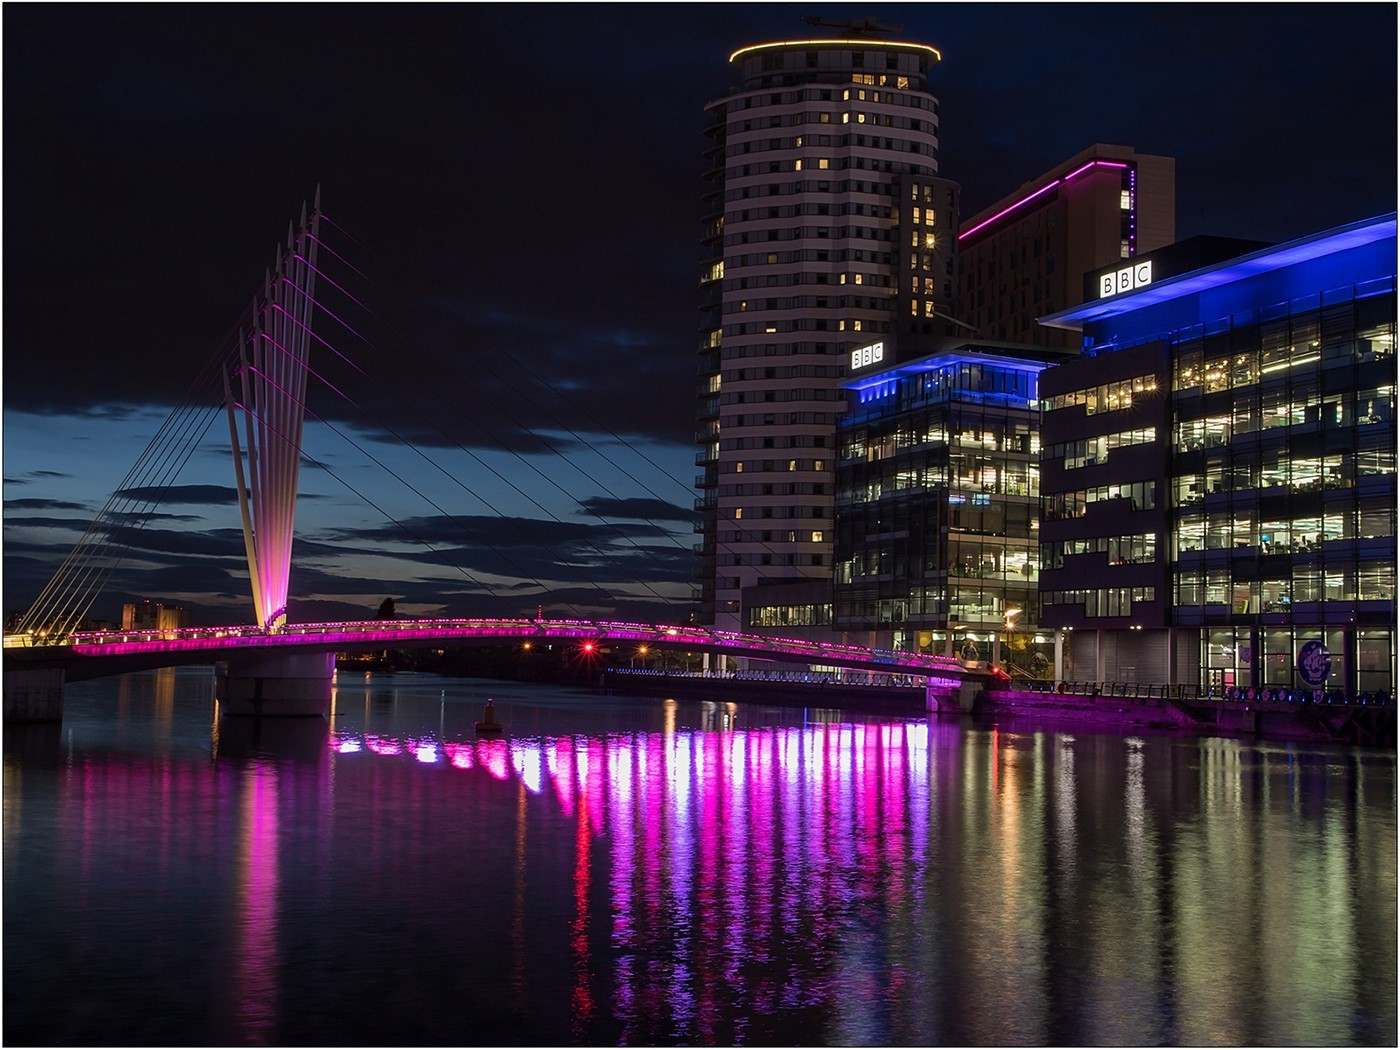 Sunset - Salford Quays